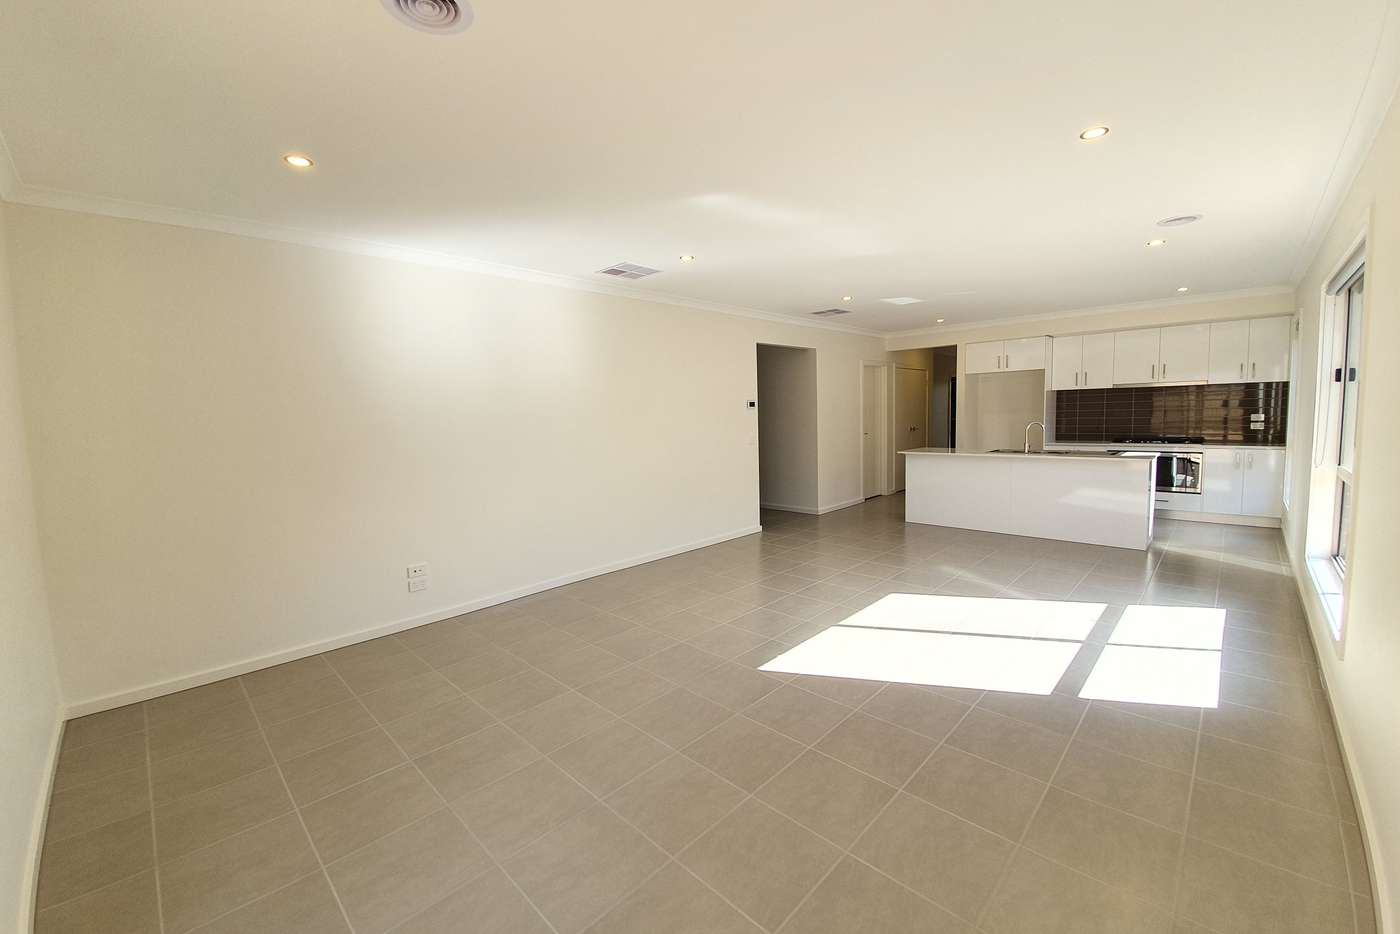 Sixth view of Homely house listing, 17 Winjeel Avenue, Point Cook VIC 3030